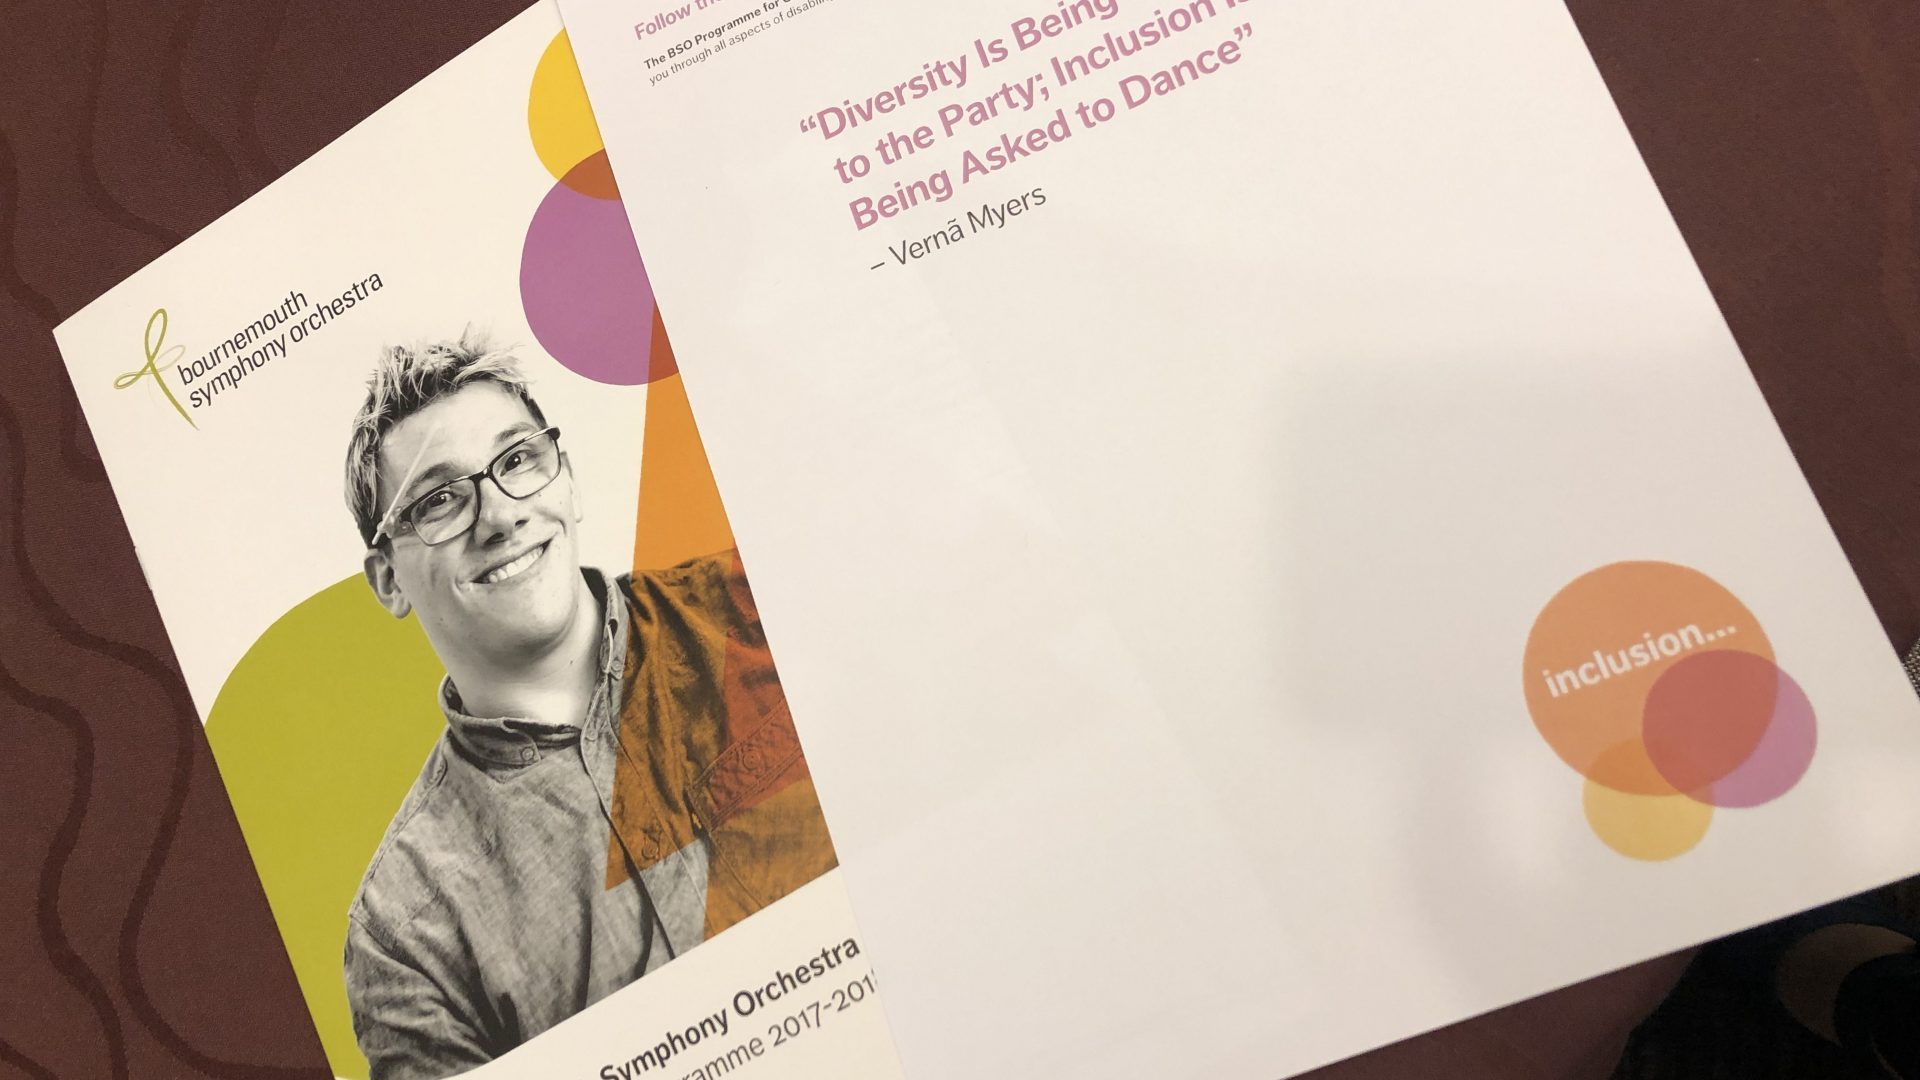 Change Makers report at the league of American orchestras conference